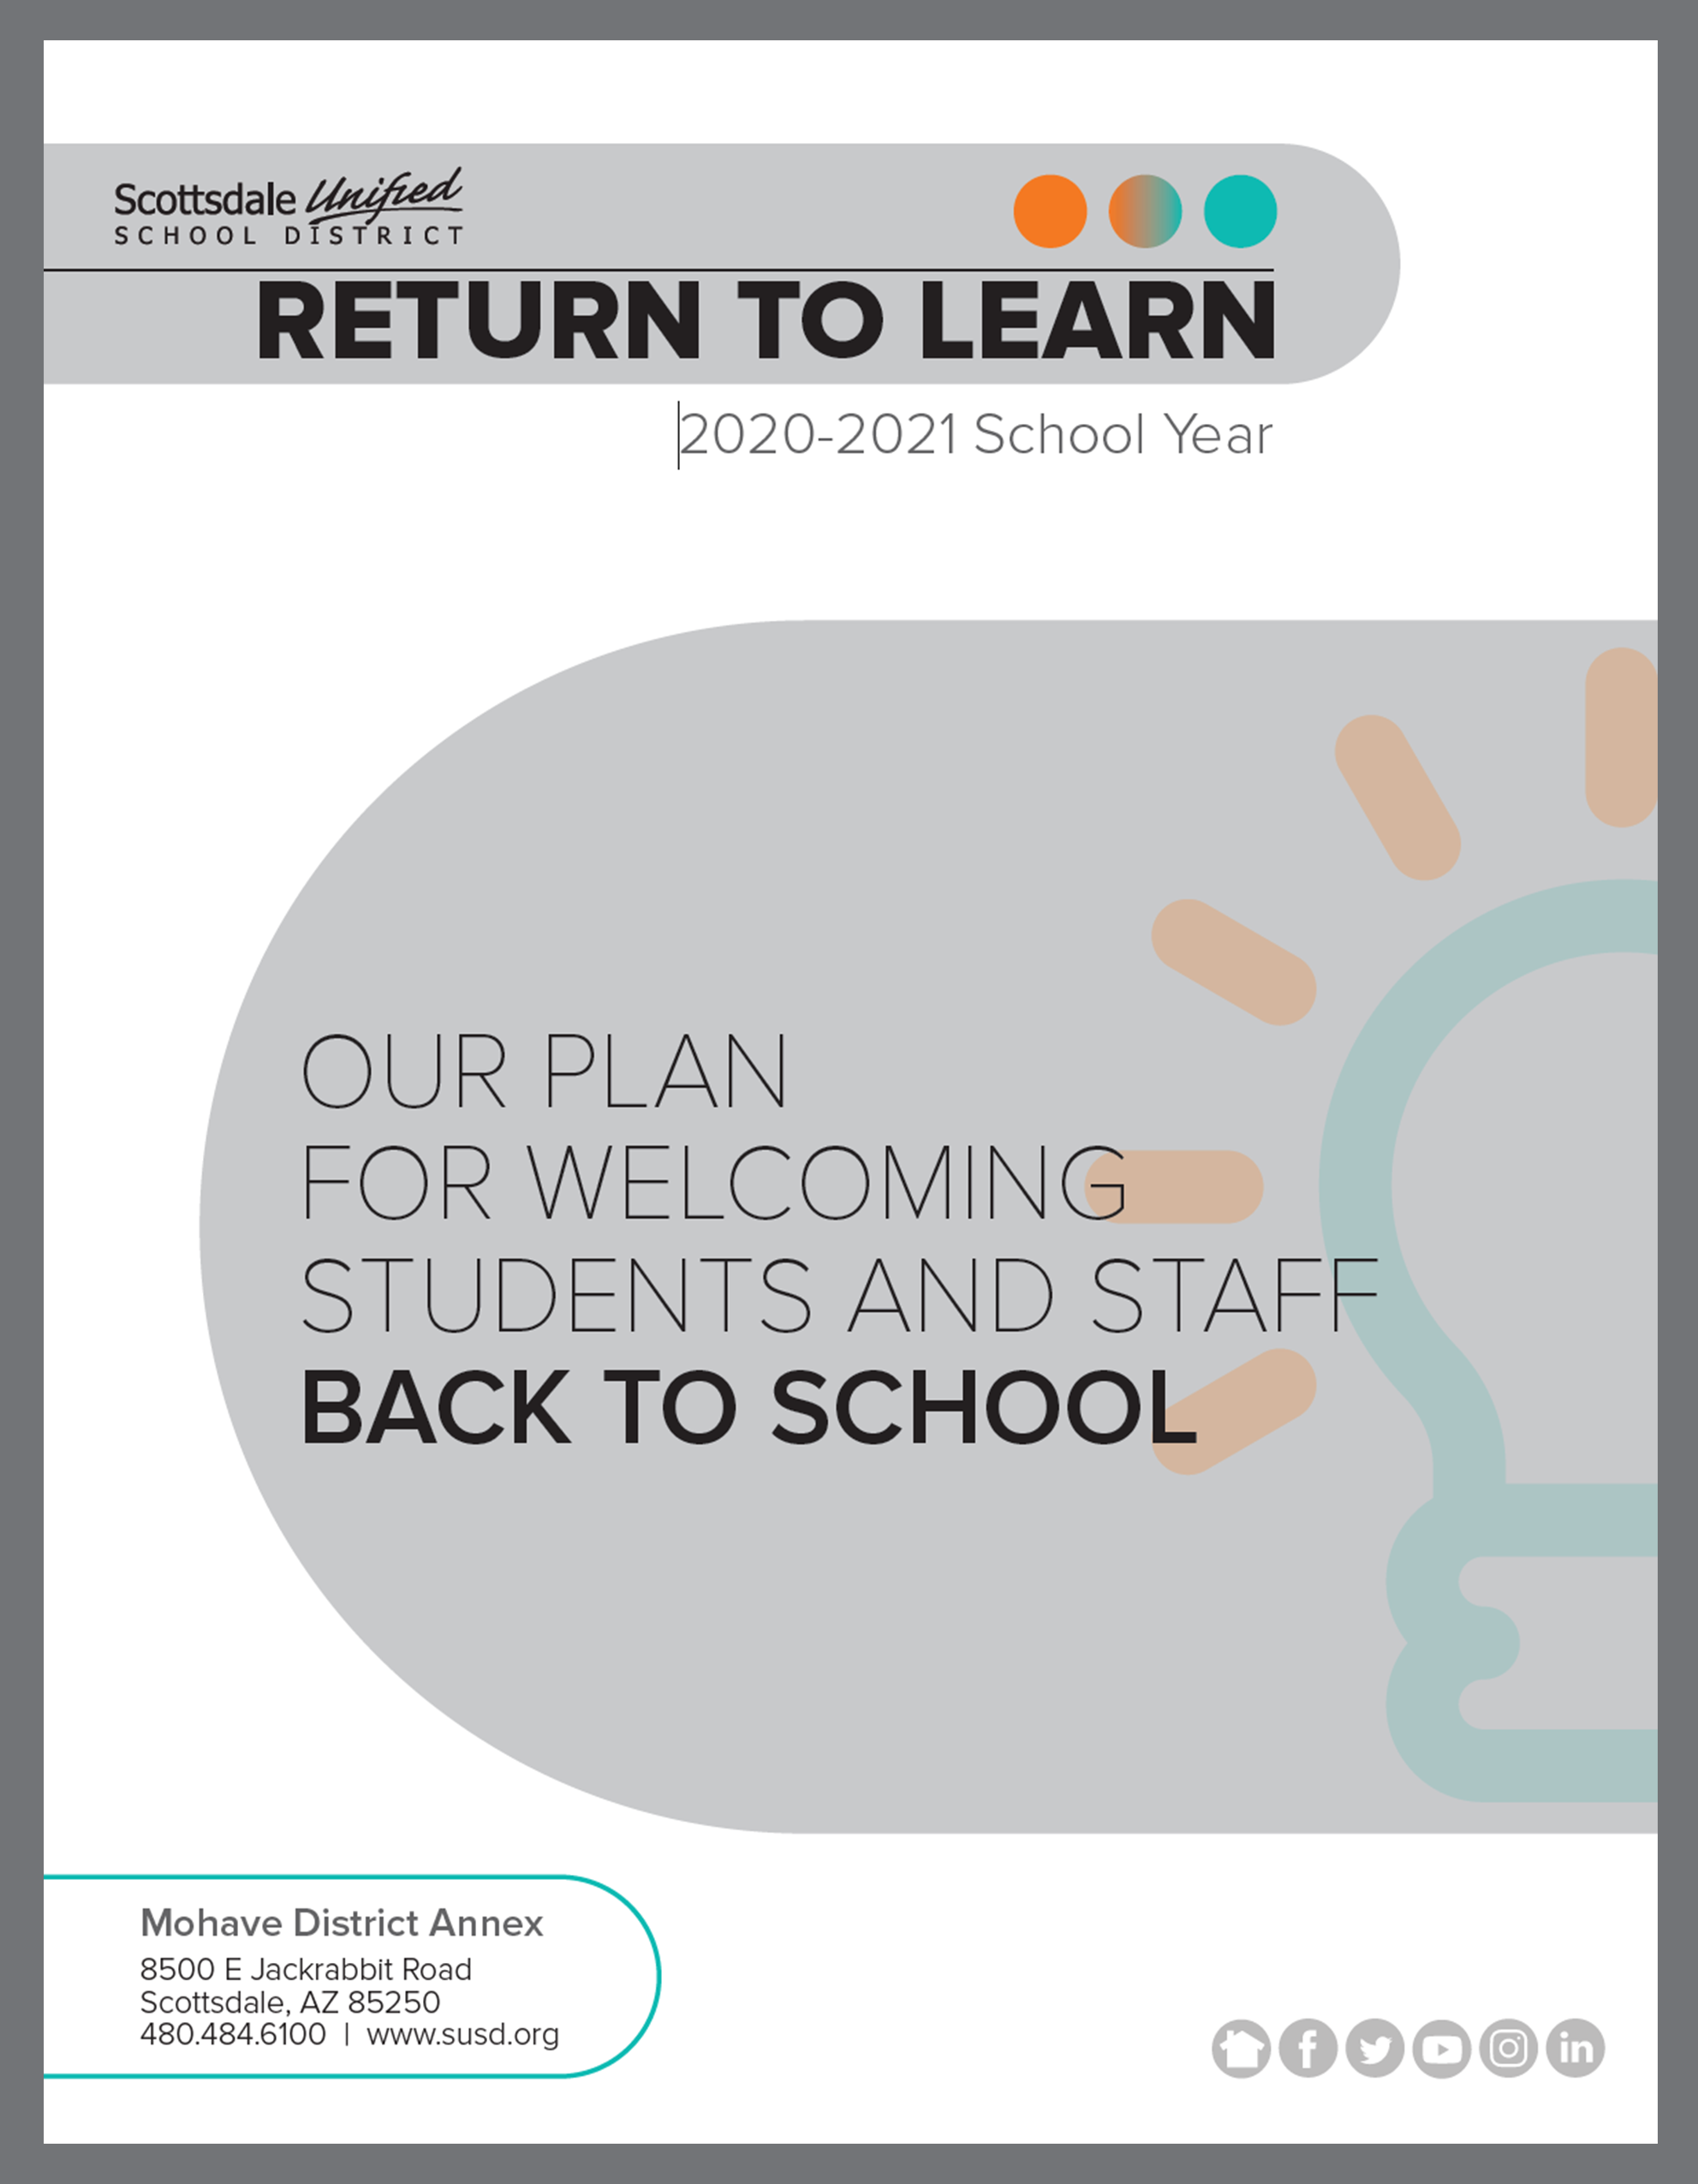 Reopening 2020 / Return To Learn In Scottsdale Unified School District Calendar